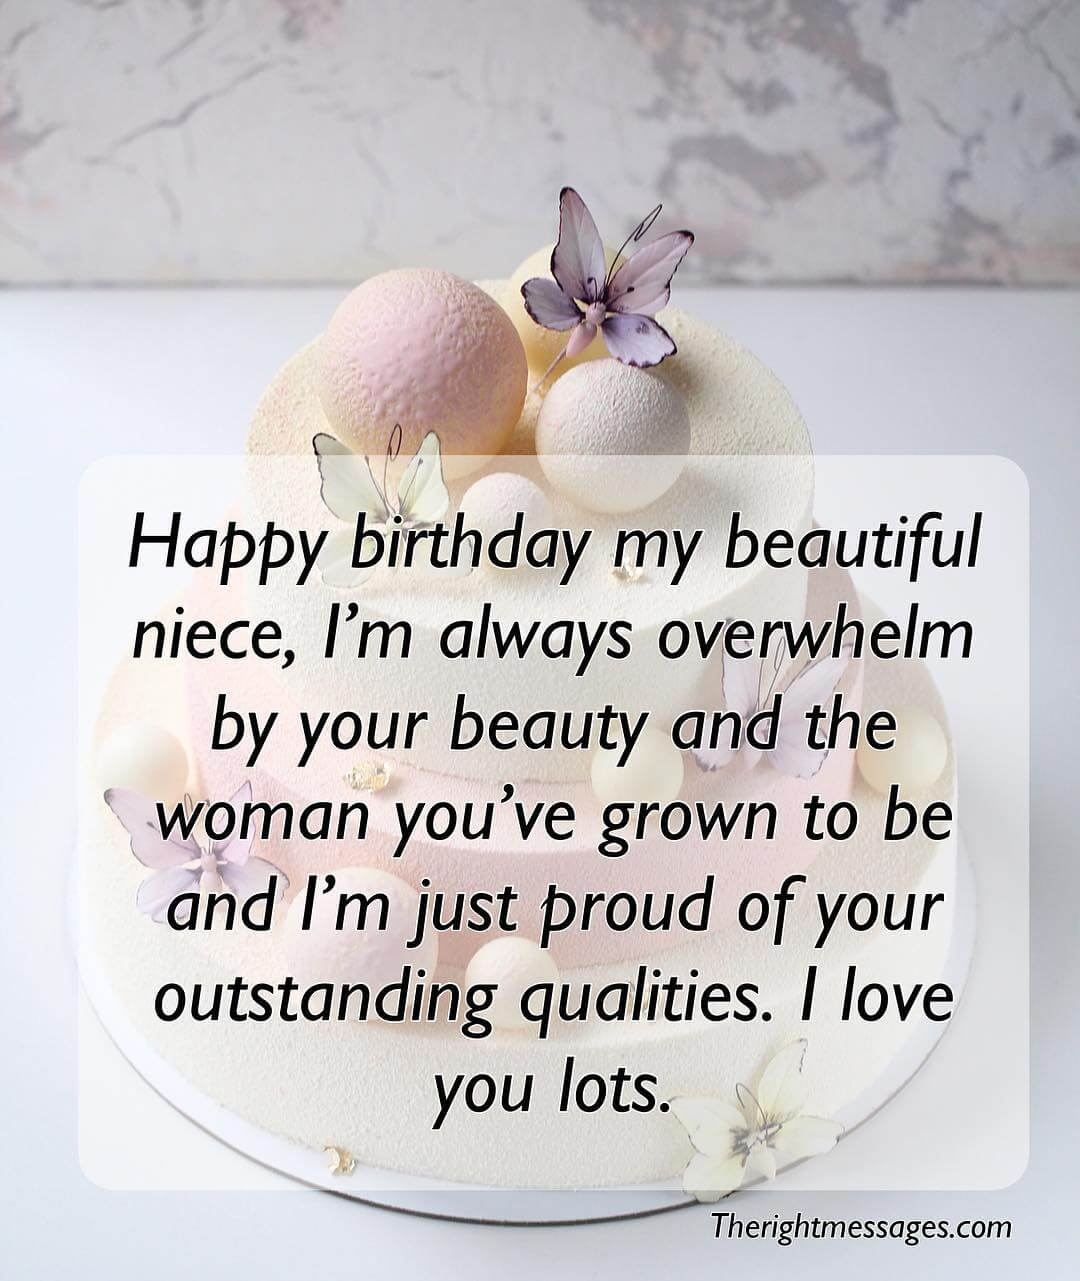 Happy Birthday Niece Quotes Happy Birthday Messages, Wishes & Quotes For Niece | The Right  Happy Birthday Niece Quotes